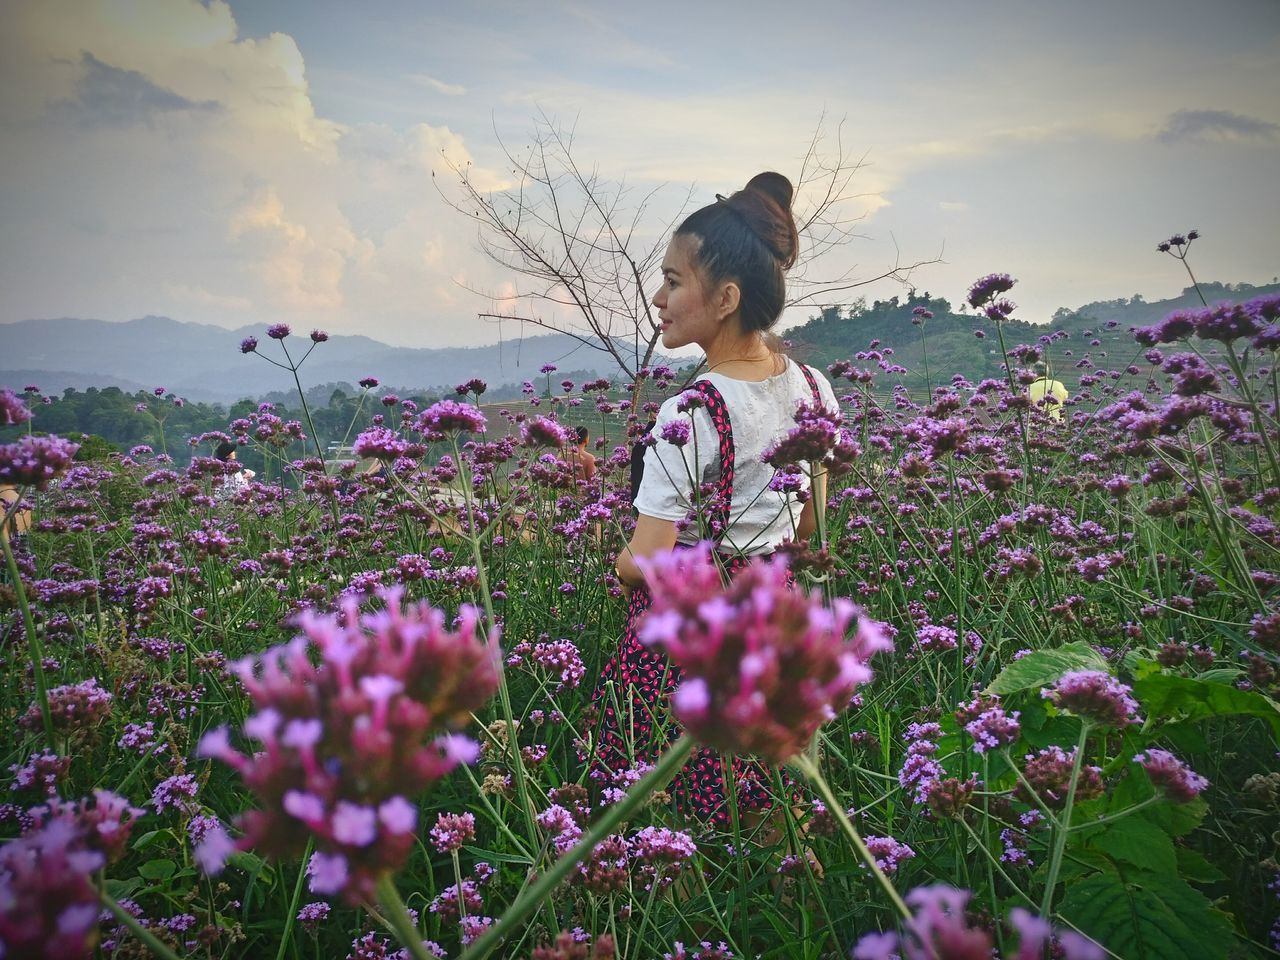 Rear View Of Young Woman Standing Amidst Pink Flowers On Field